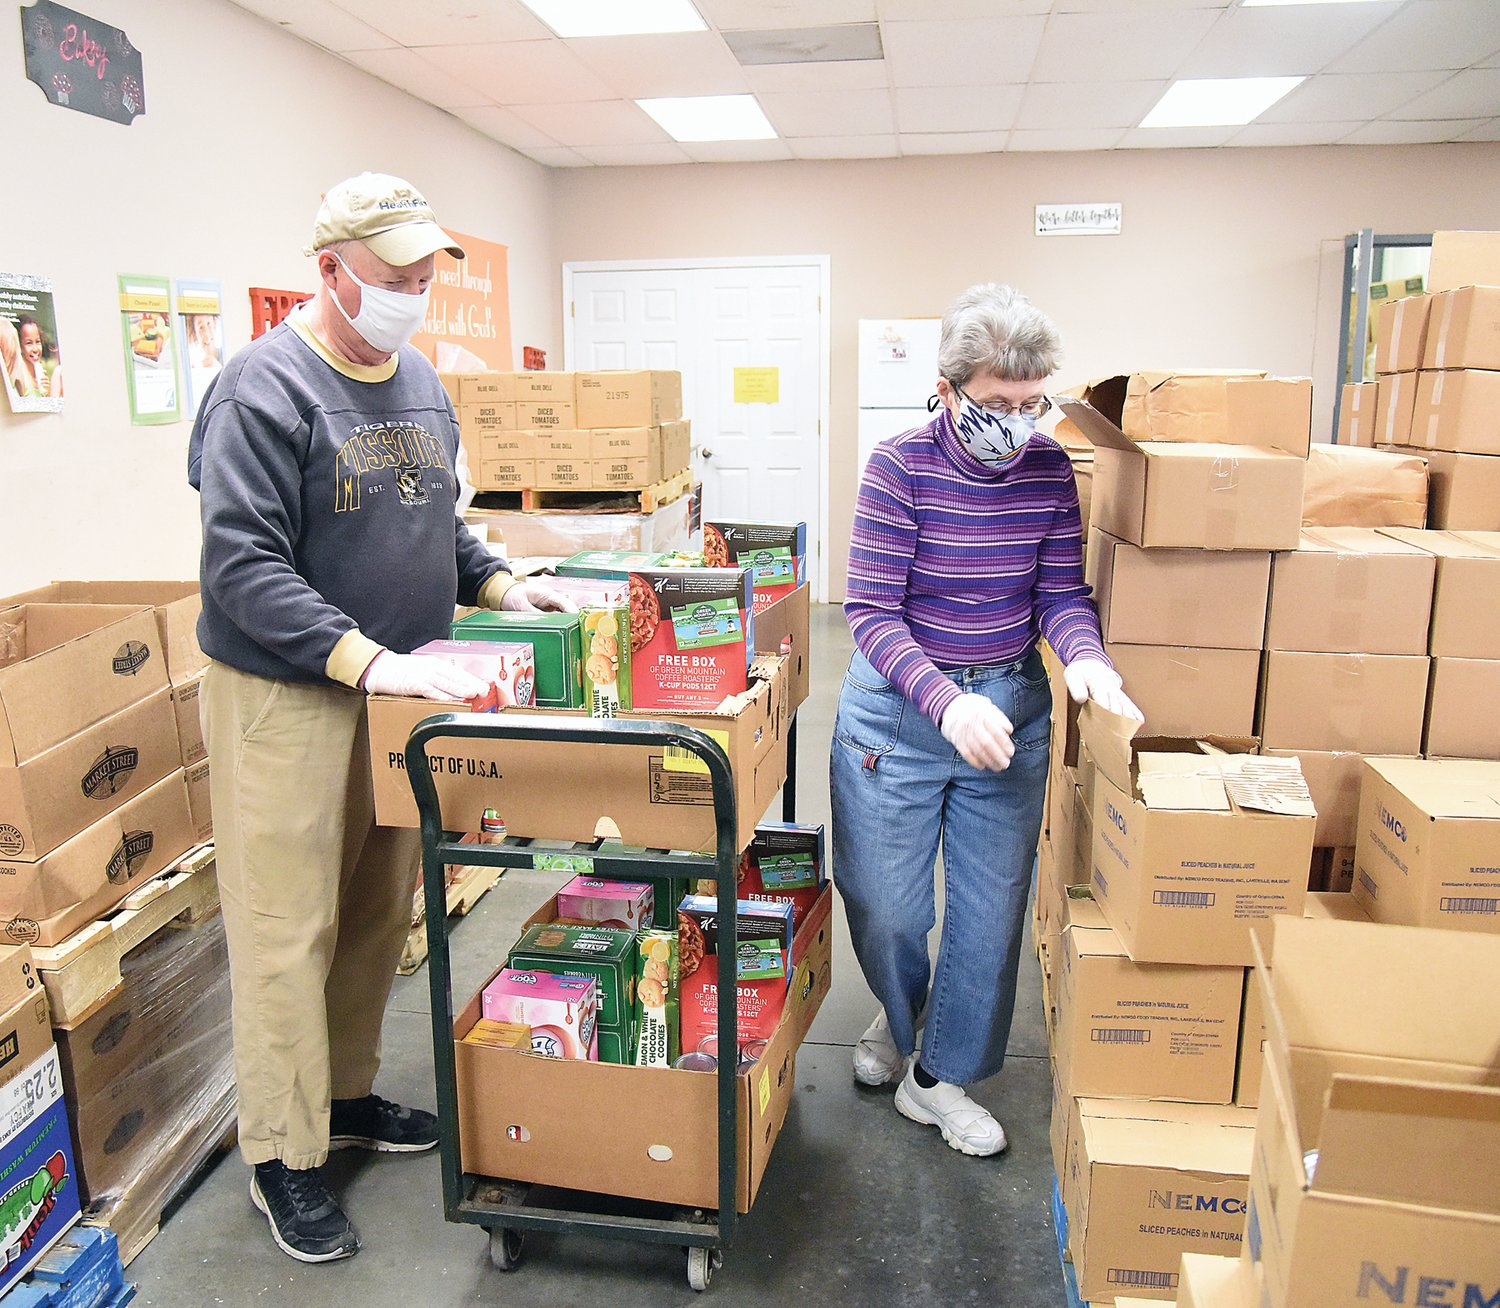 Open Door Pantry volunteers Richard and Karen Parker, of Sedalia, work to load boxes with canned goods this week at the panty.